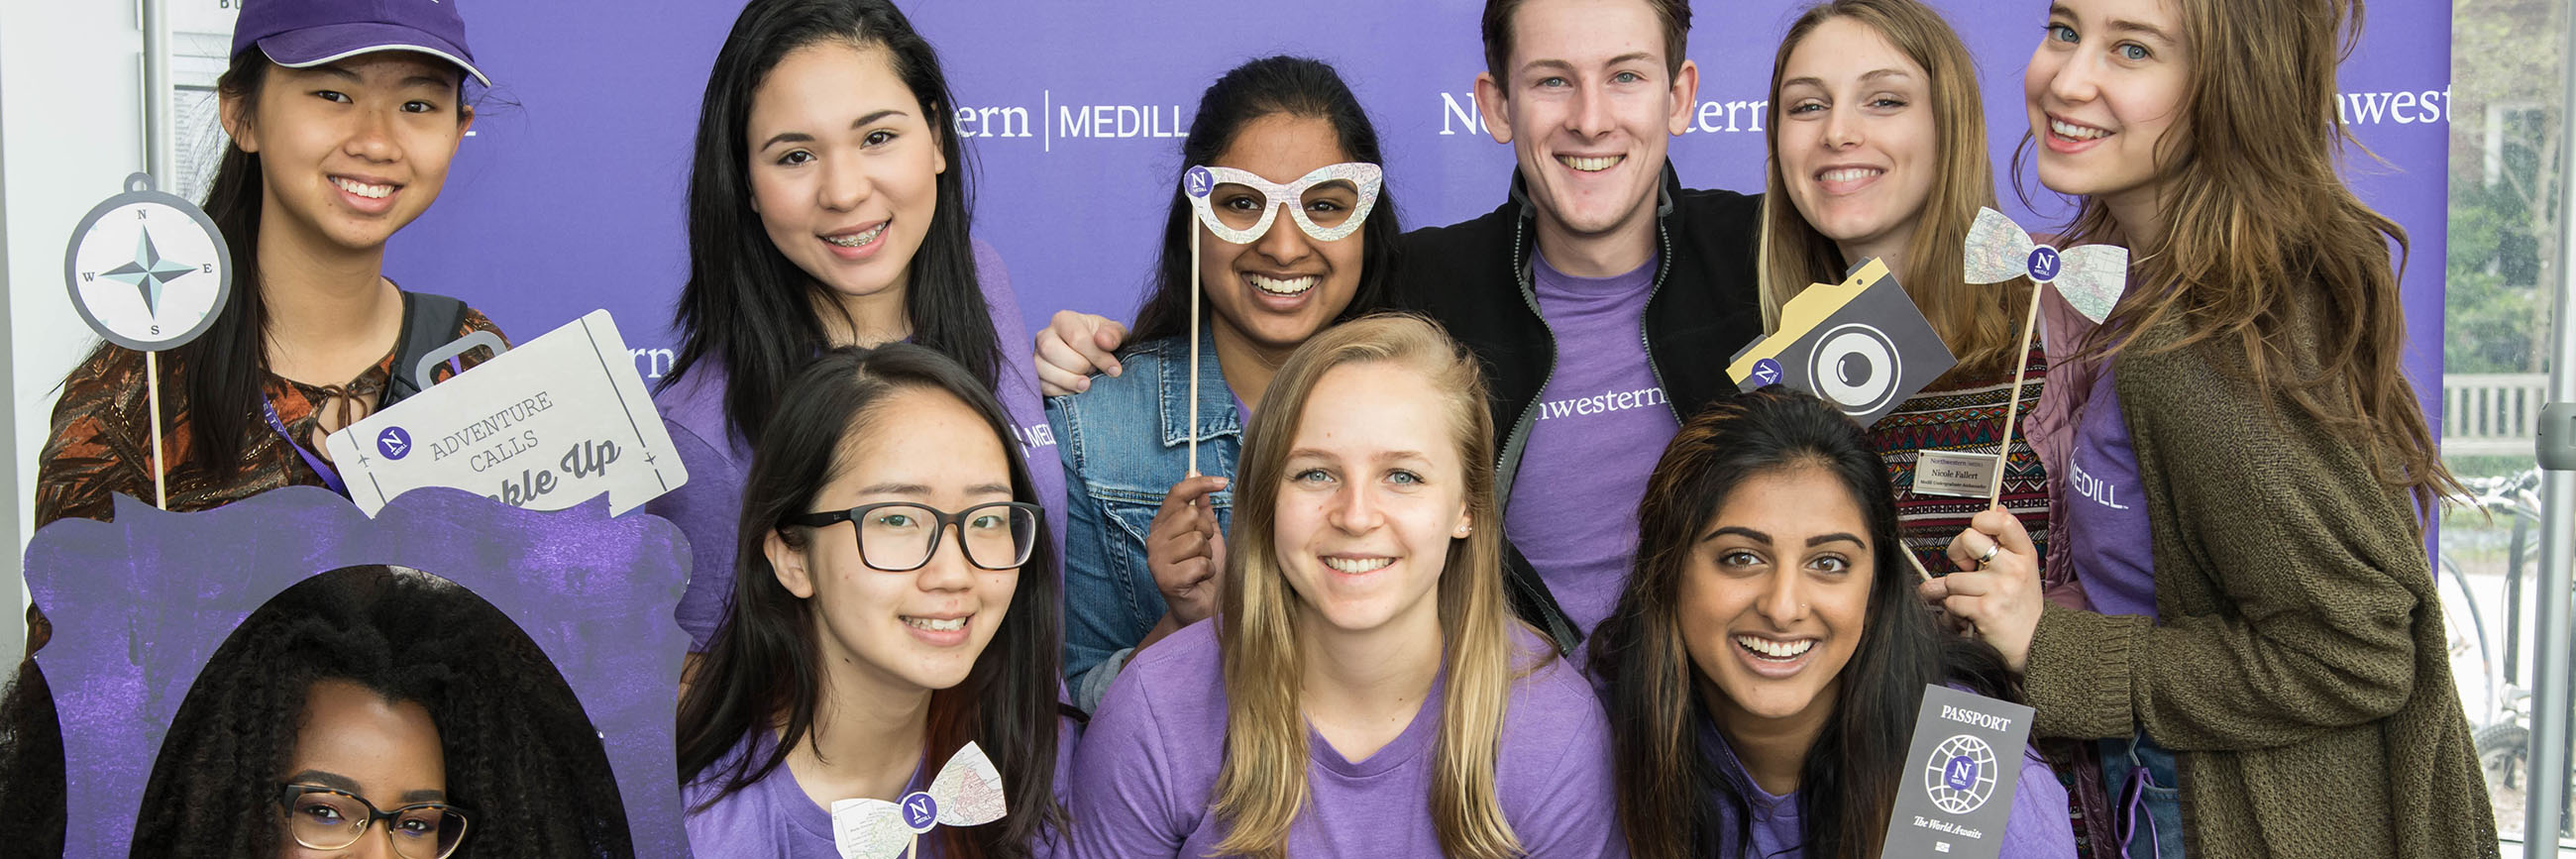 Students with fun accessories posing for a photo in front of Medill banner at Wildcat Days.